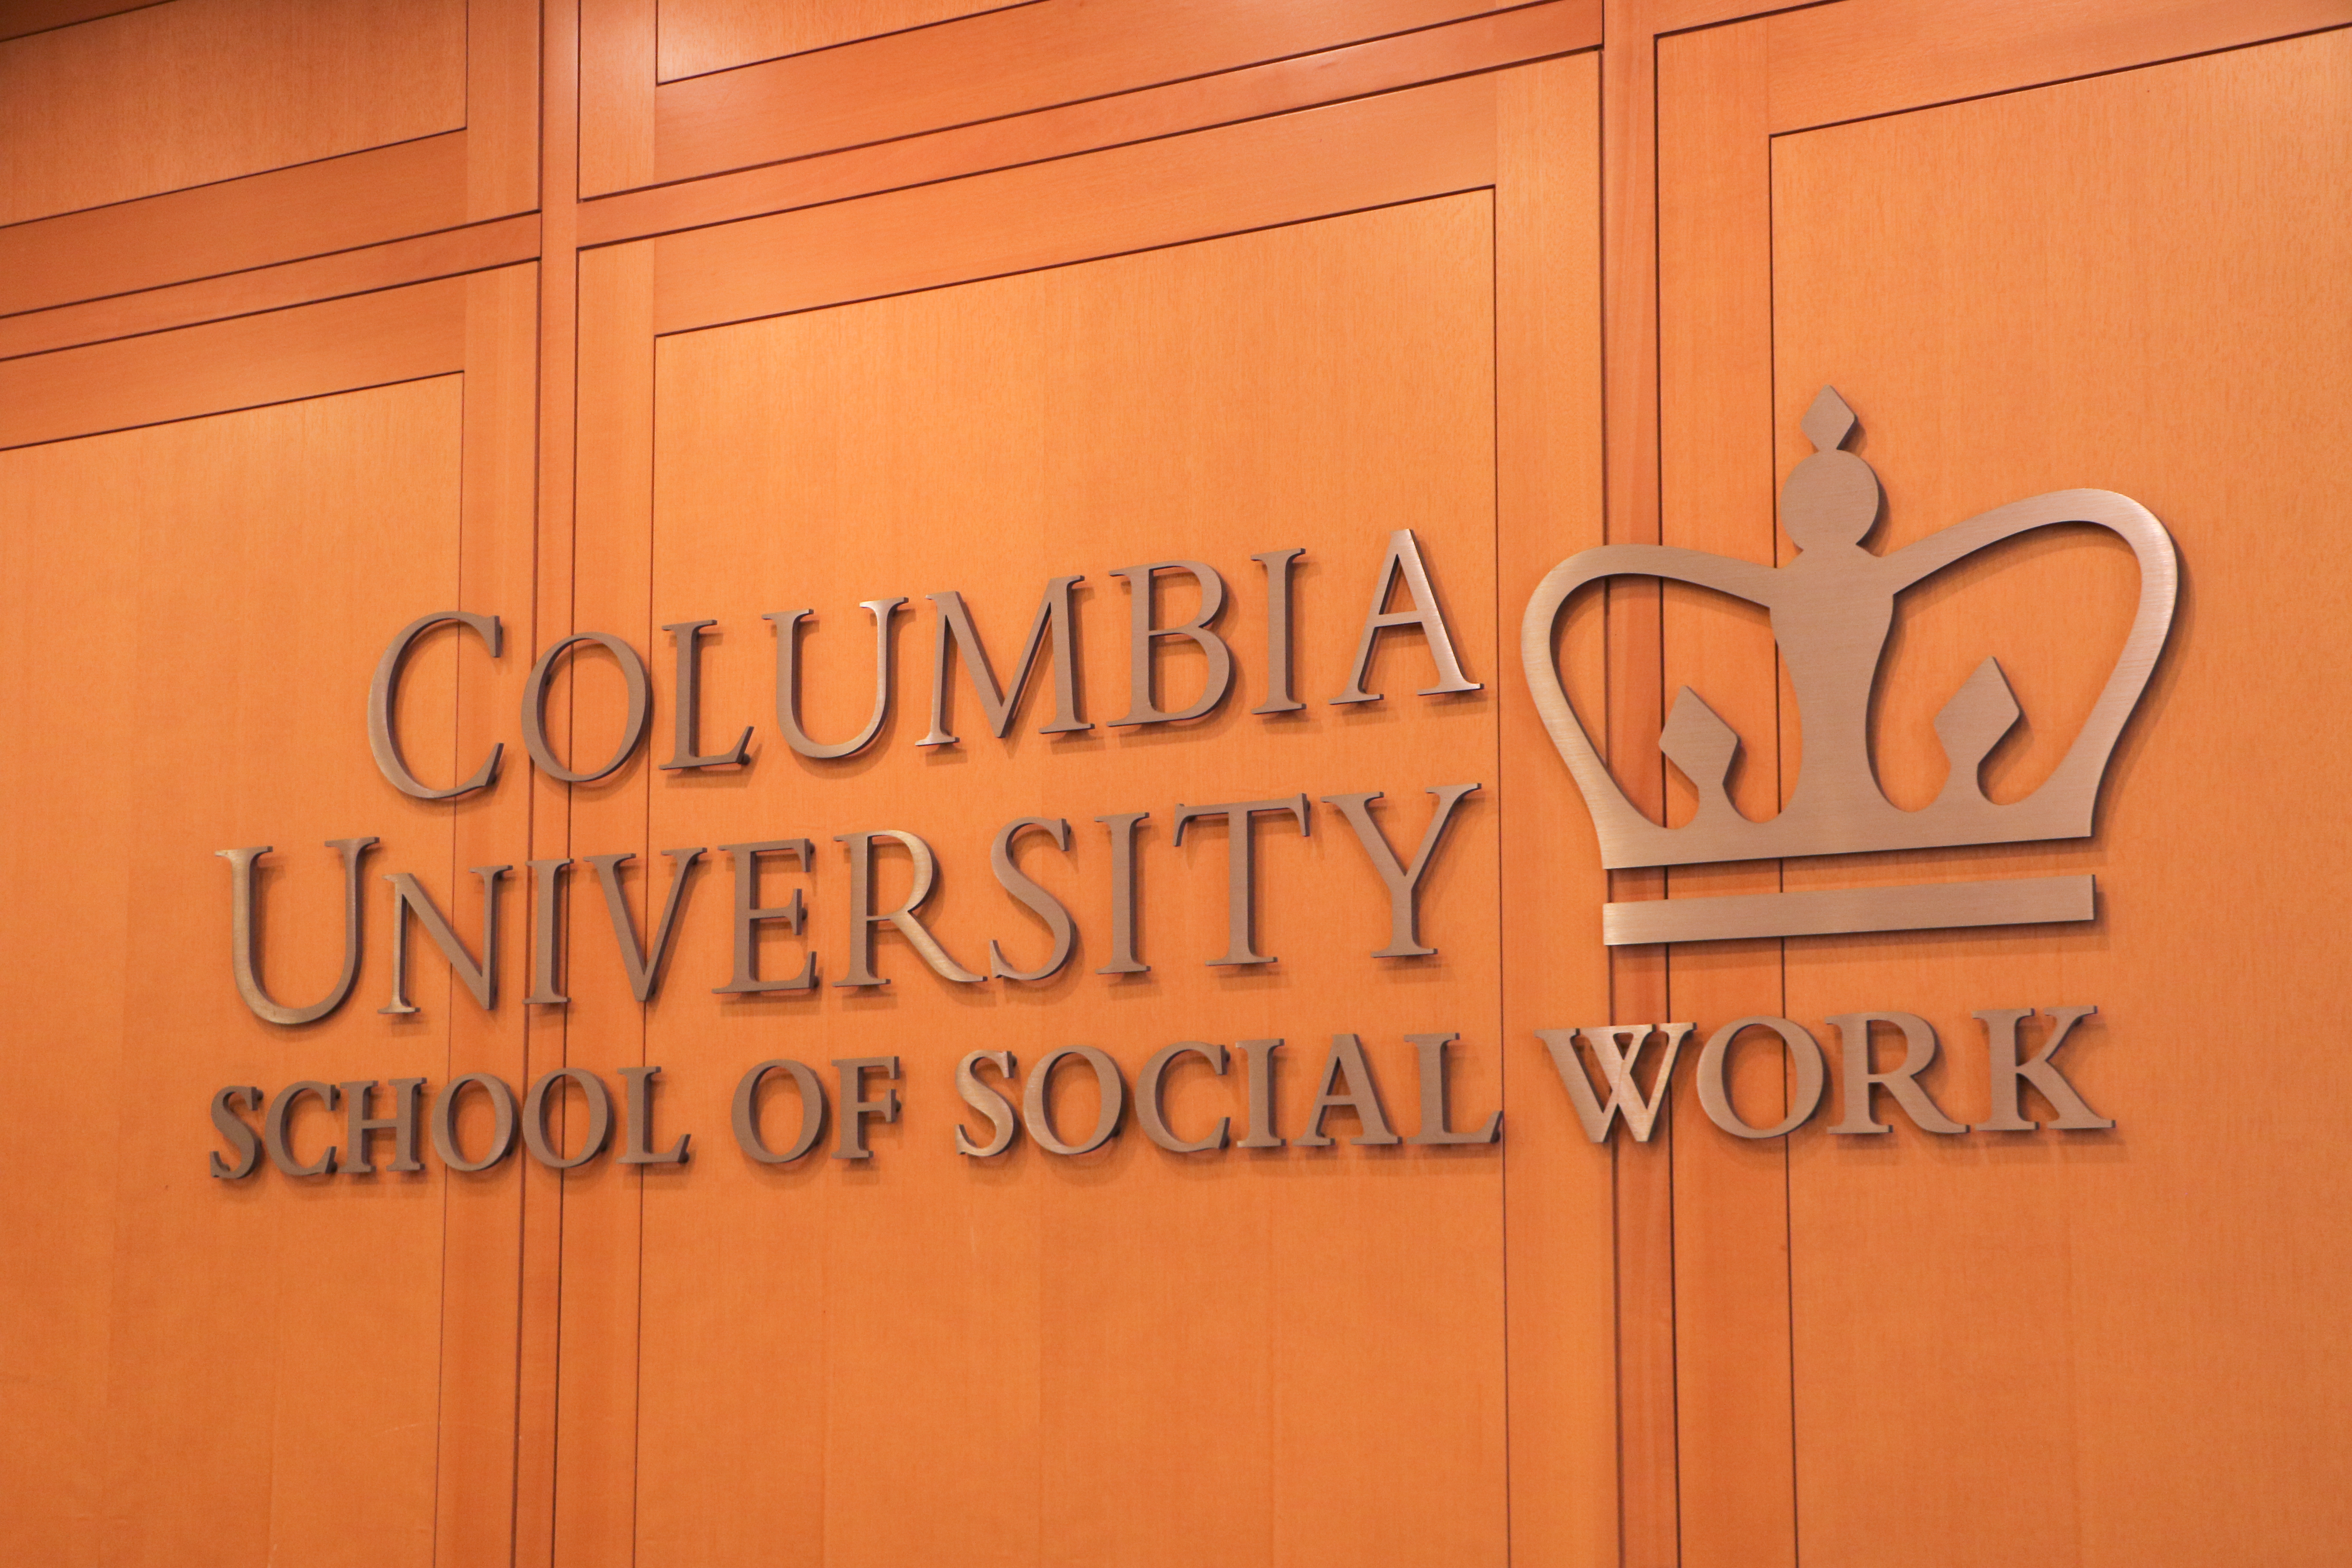 Columbia University School of Social Work Logo on Wooden Wall